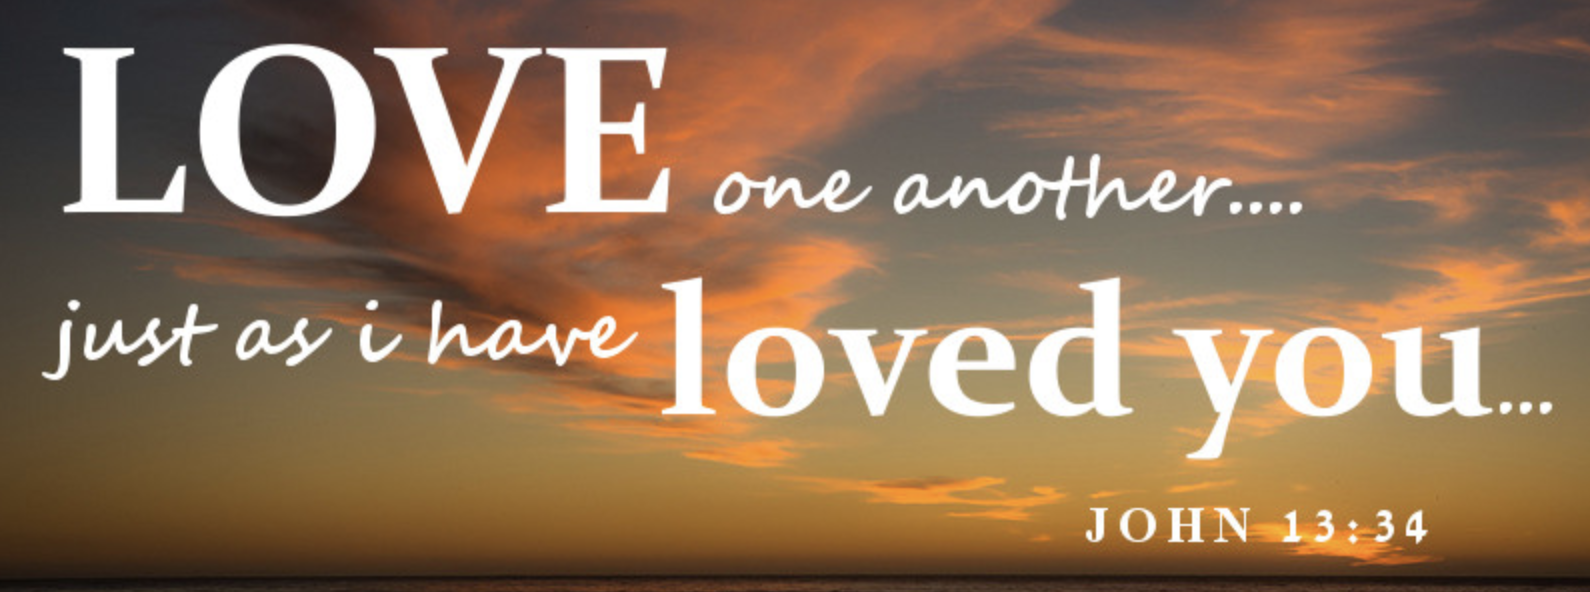 Love One Another: Following The Prophet And Christ's Prime Injunction To